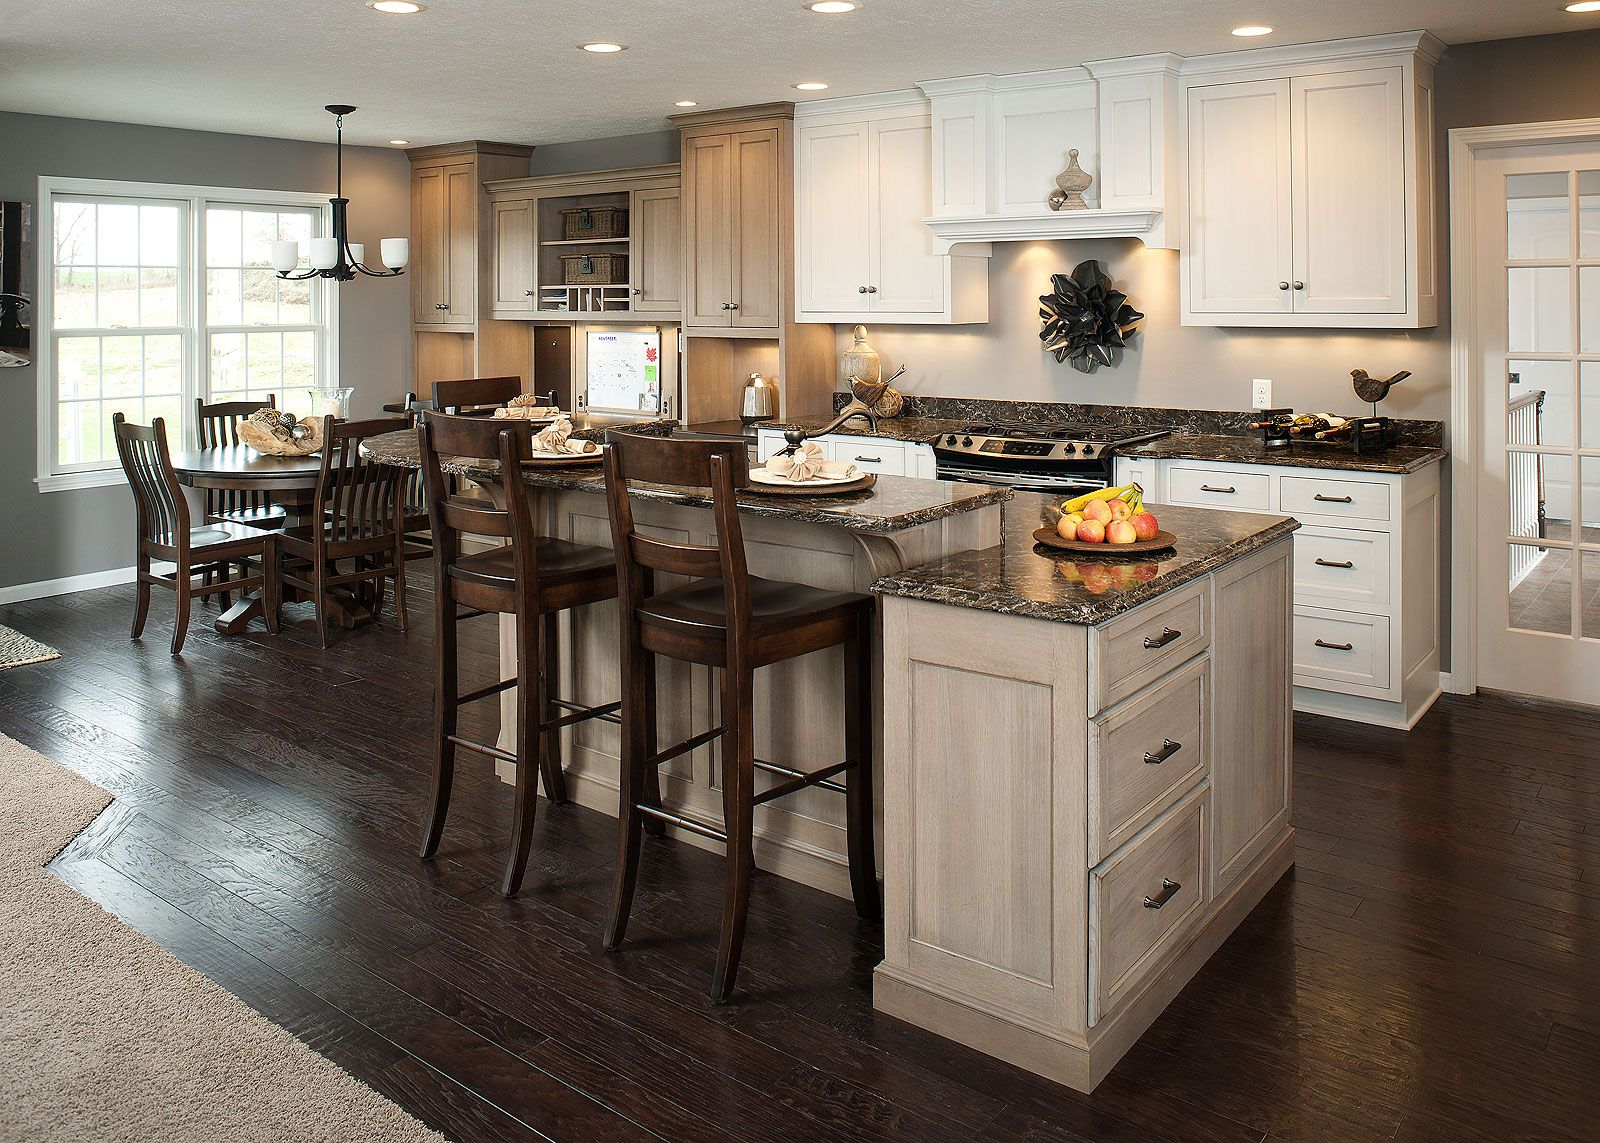 Complete Traditional Kitchen using Contemporary Kitchen Island with Rustic Oak Stools and Granite Countertop